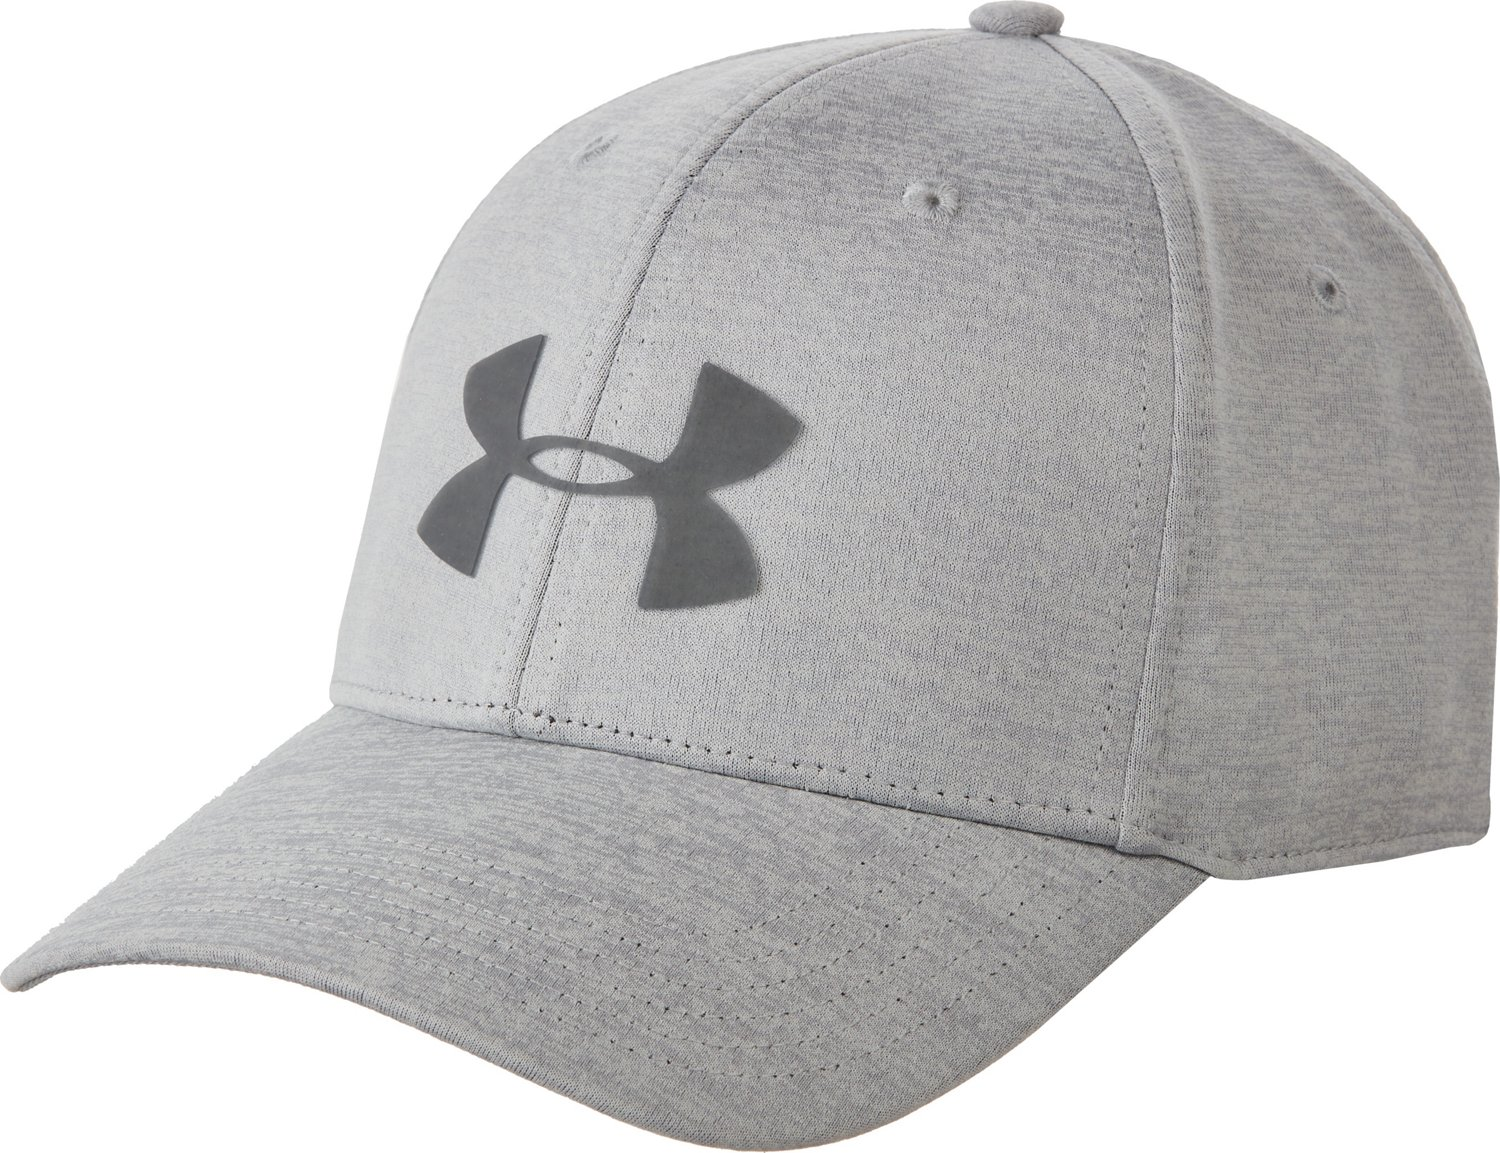 Display product reviews for Under Armour Men s Twist Closer 2 Training Cap 7c0686021b7